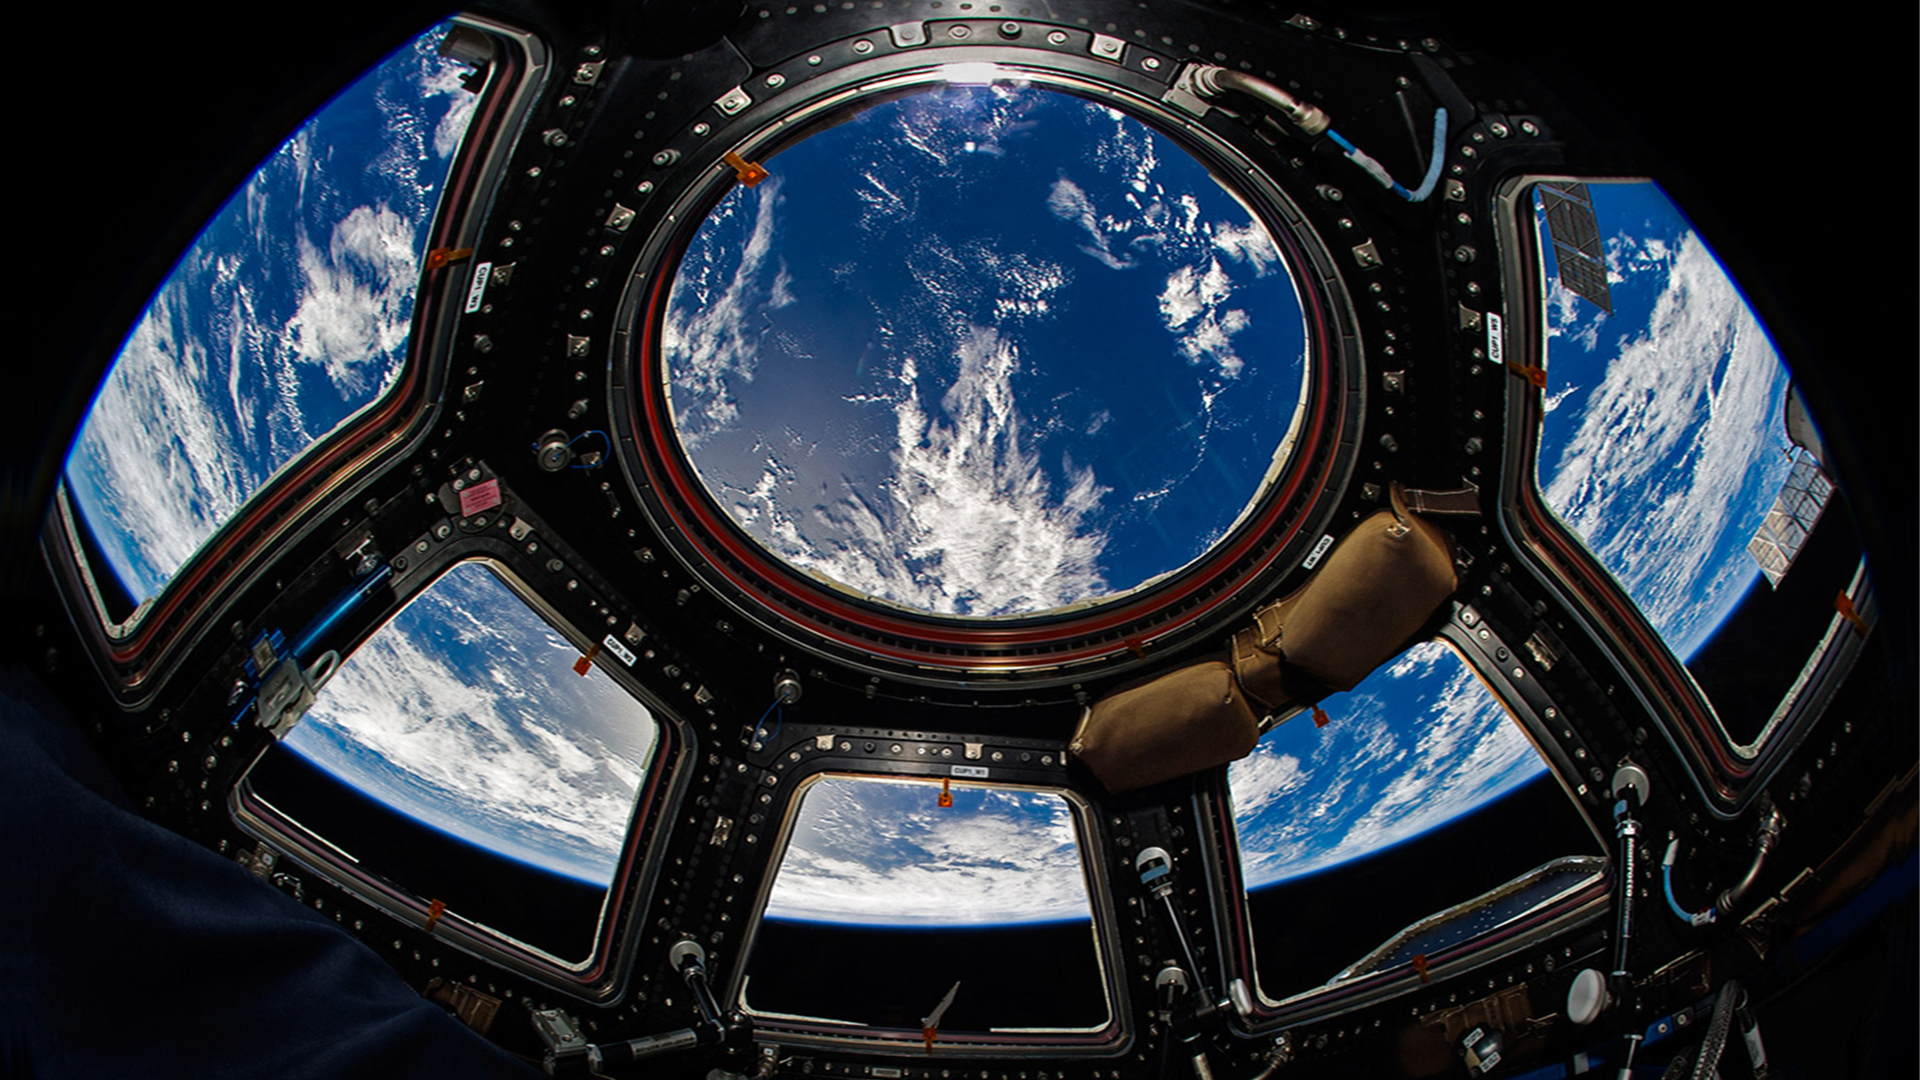 International Space Station Cupola. Virtual background to use on Zoom, Microsoft Teams, Skype, Google Meet, WebEx or any other campatible app.